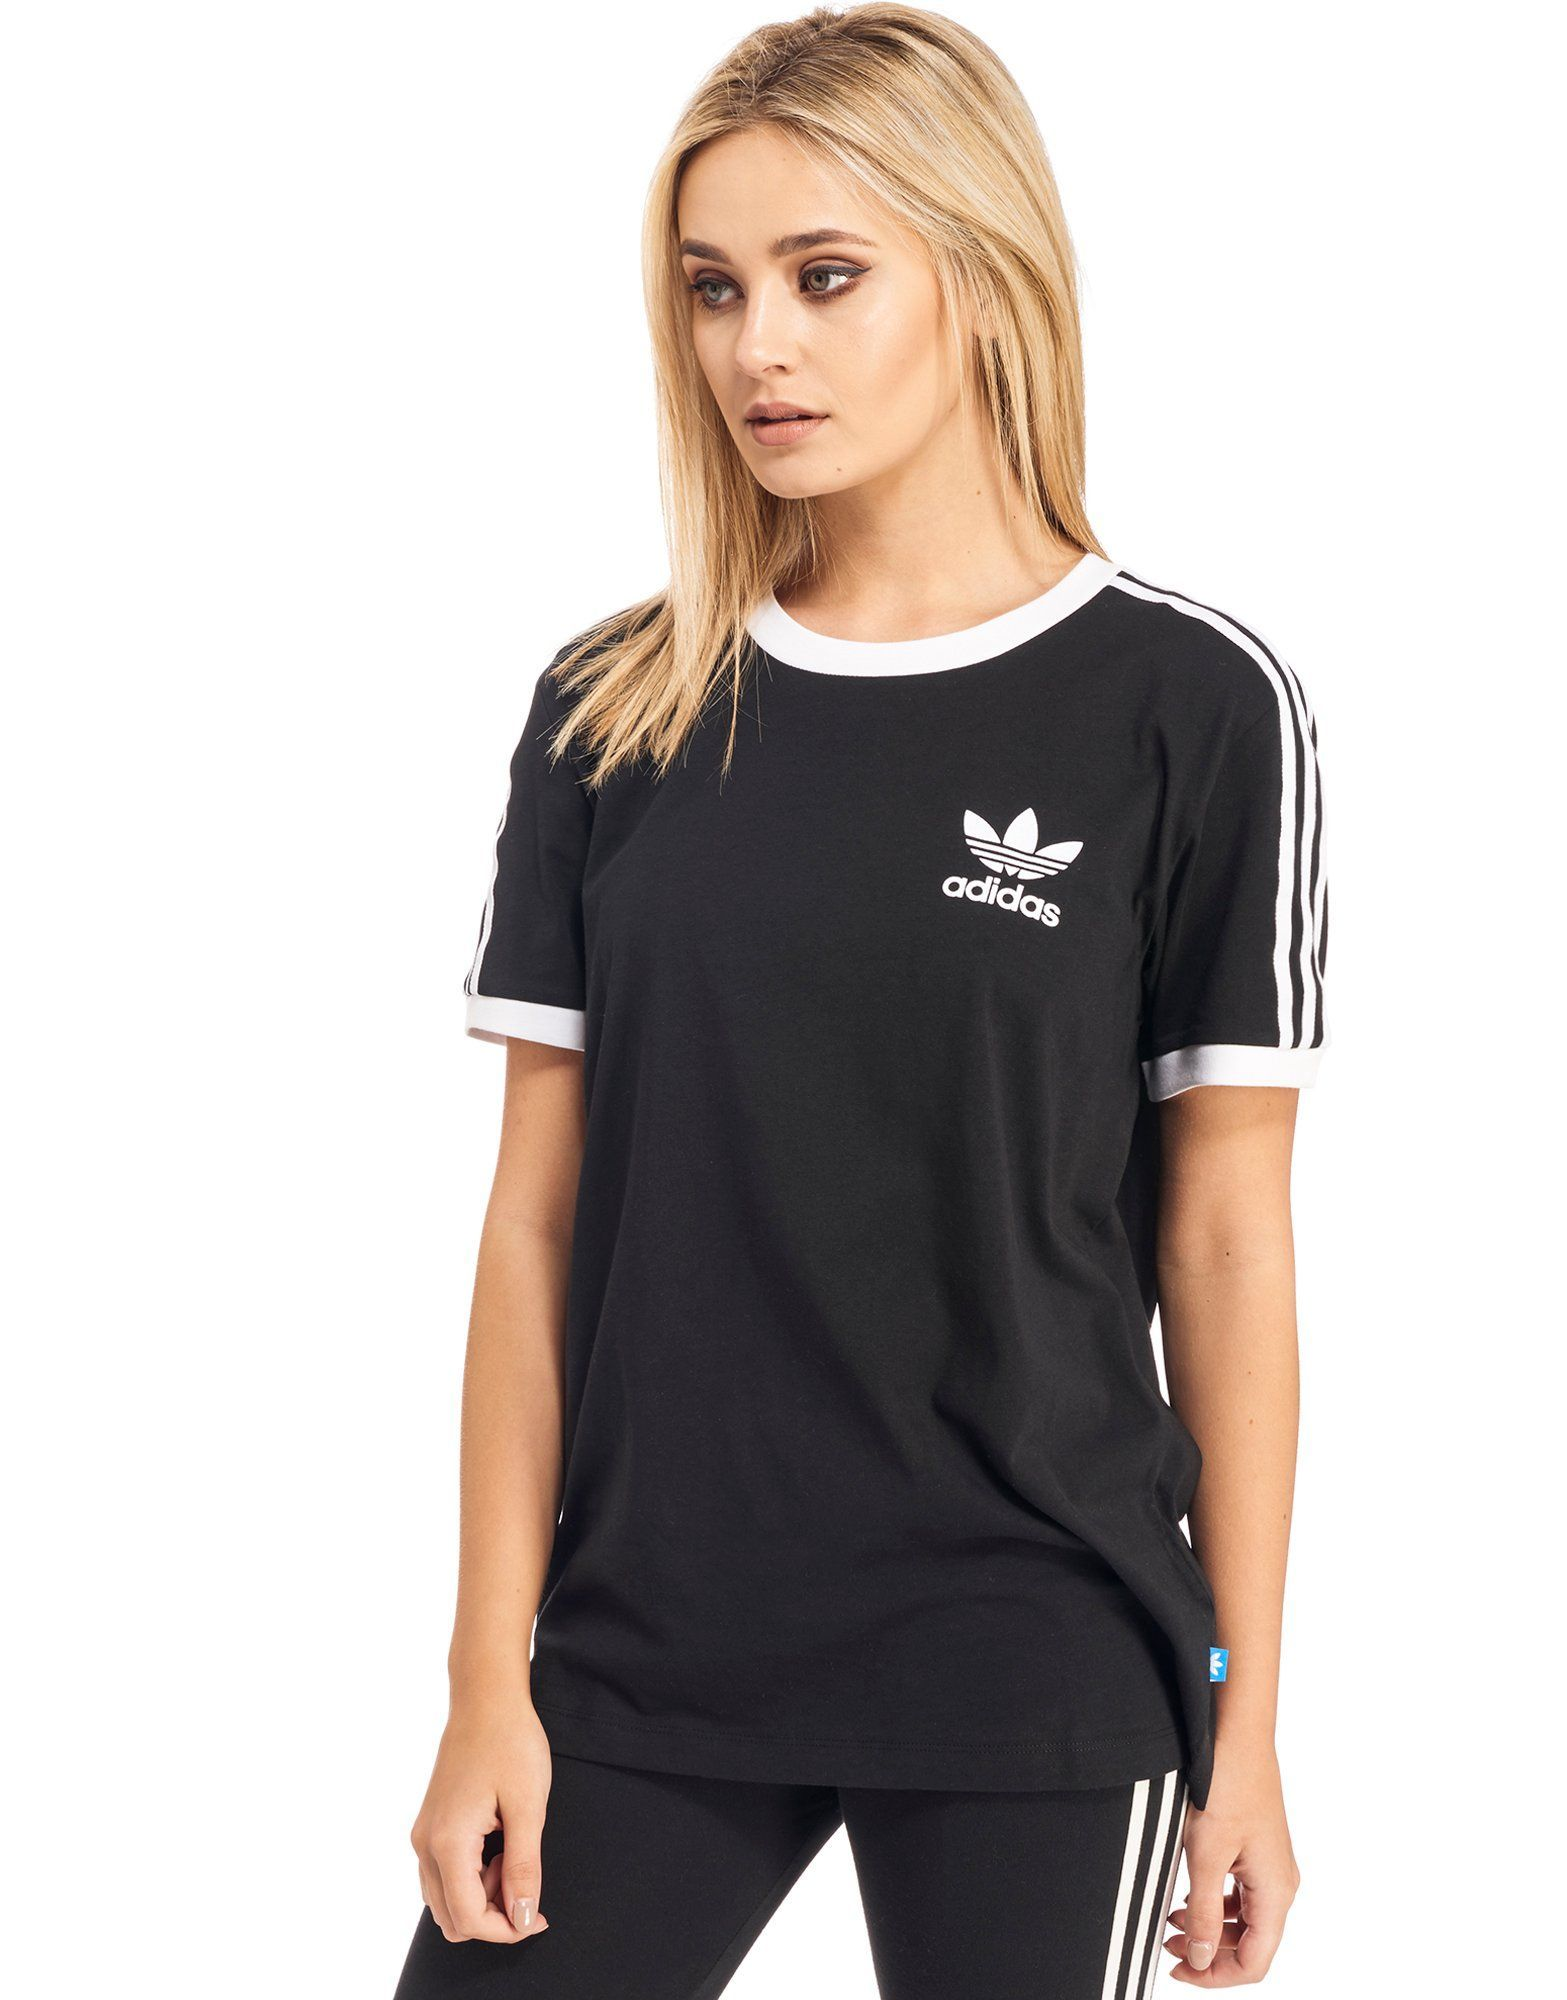 damen adidas originals t-shirt